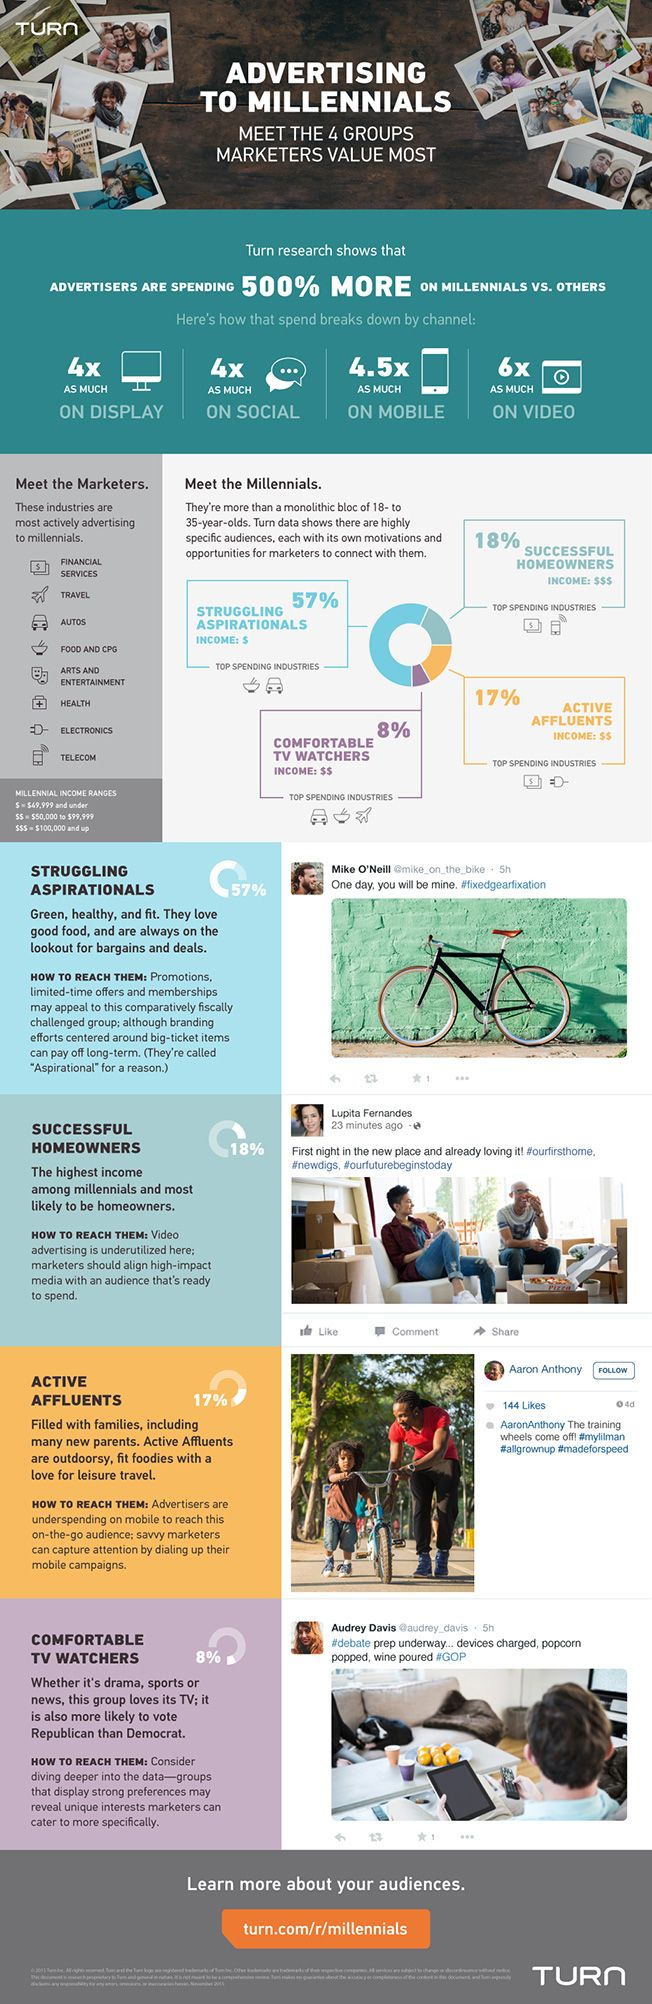 Infographic: Marketers Are Spending 500% More on Millennials Than All Others Combined | Adweek #mobilizingshoppers